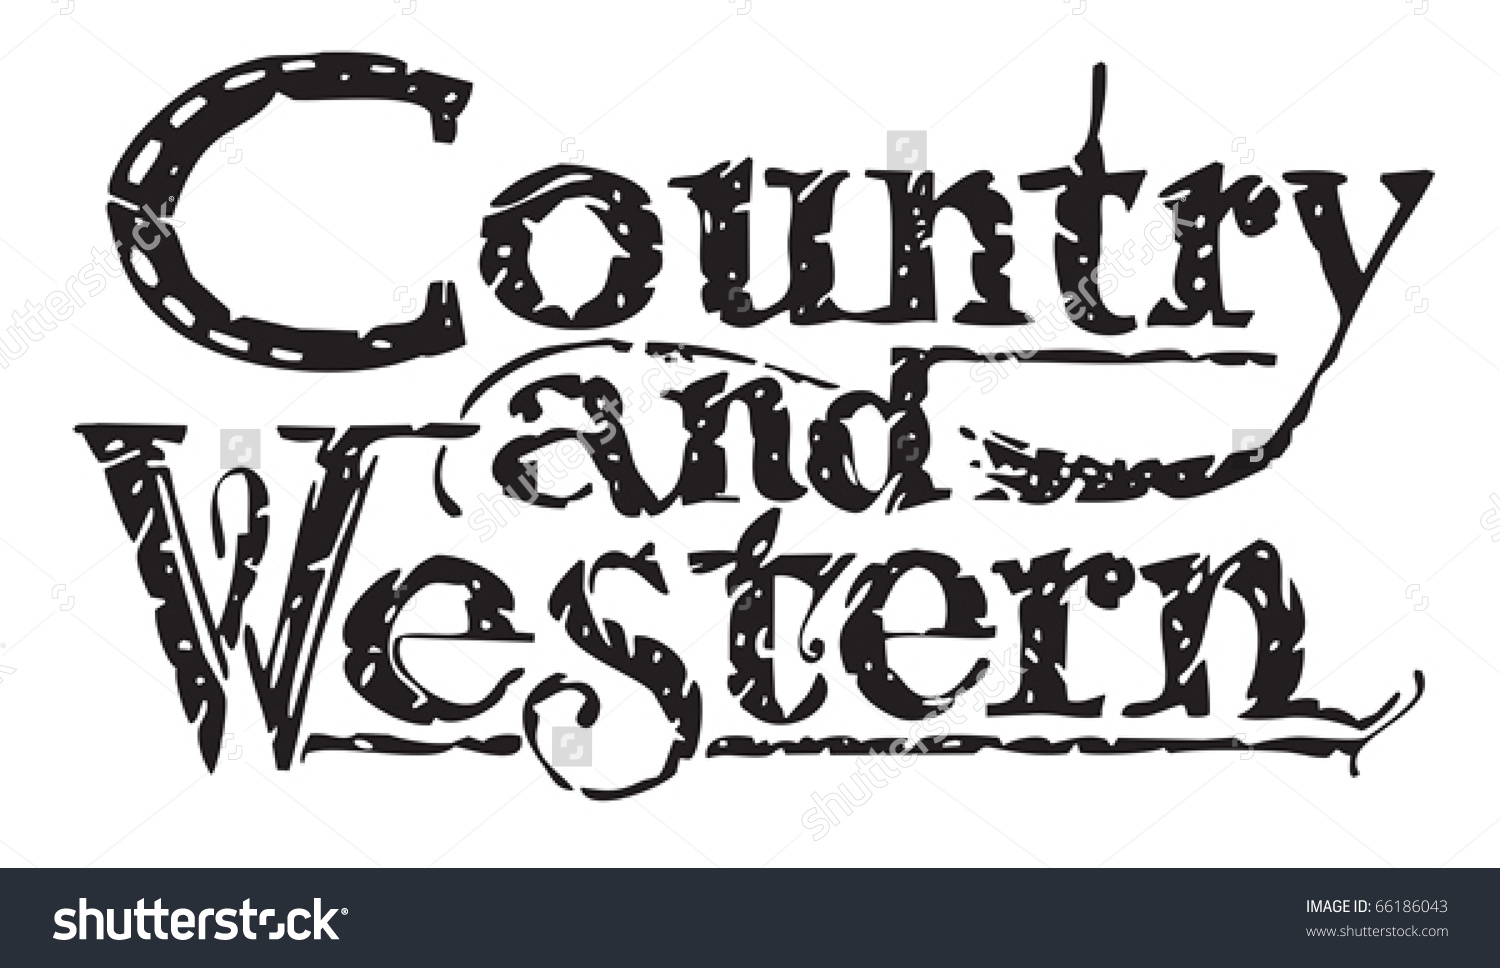 Country clipart western music. Free cliparts download clip